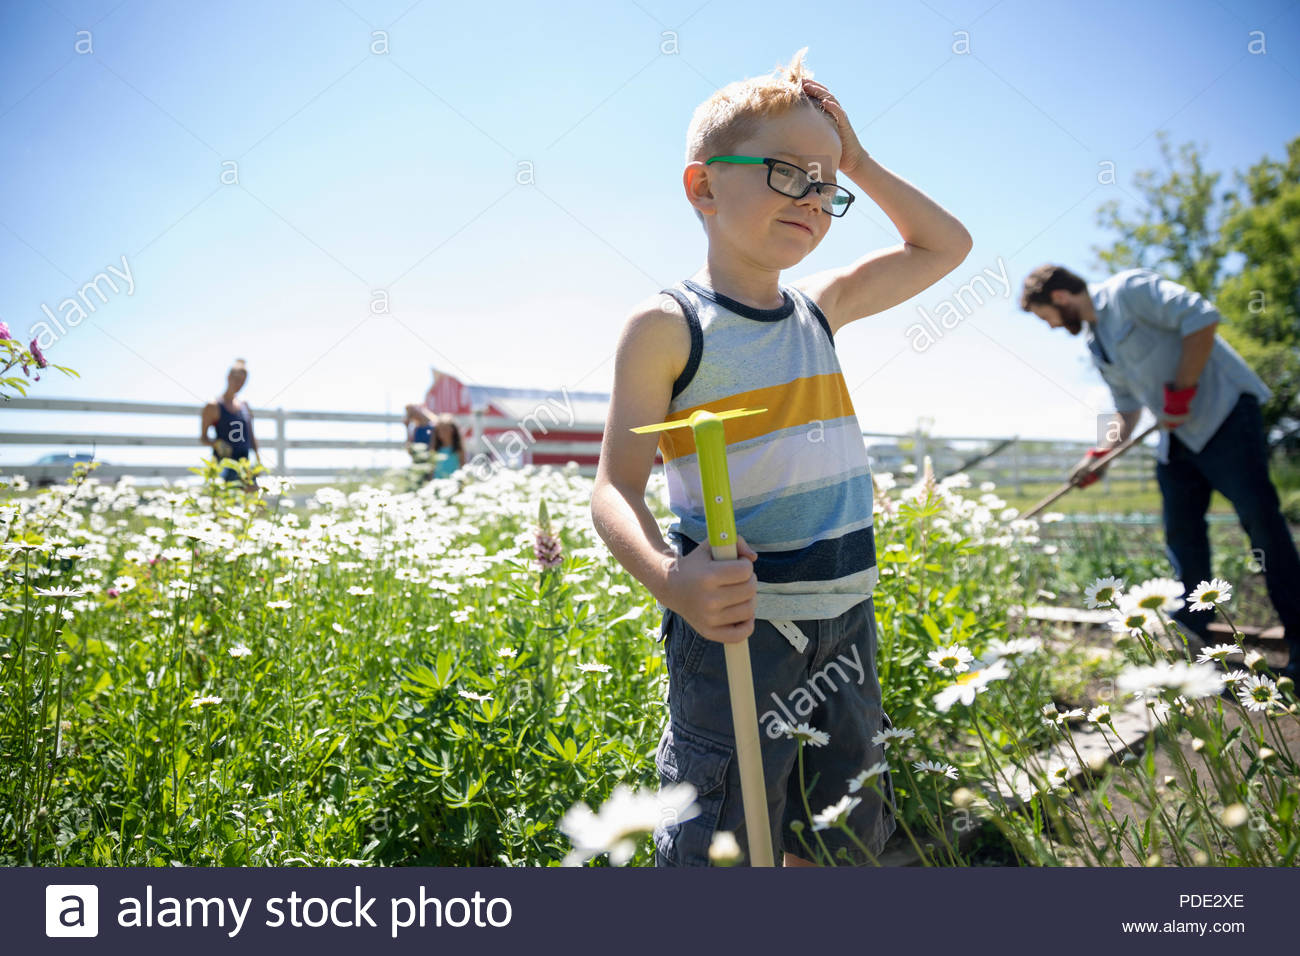 Boy gardening with family in sunny rural garden - Stock Image